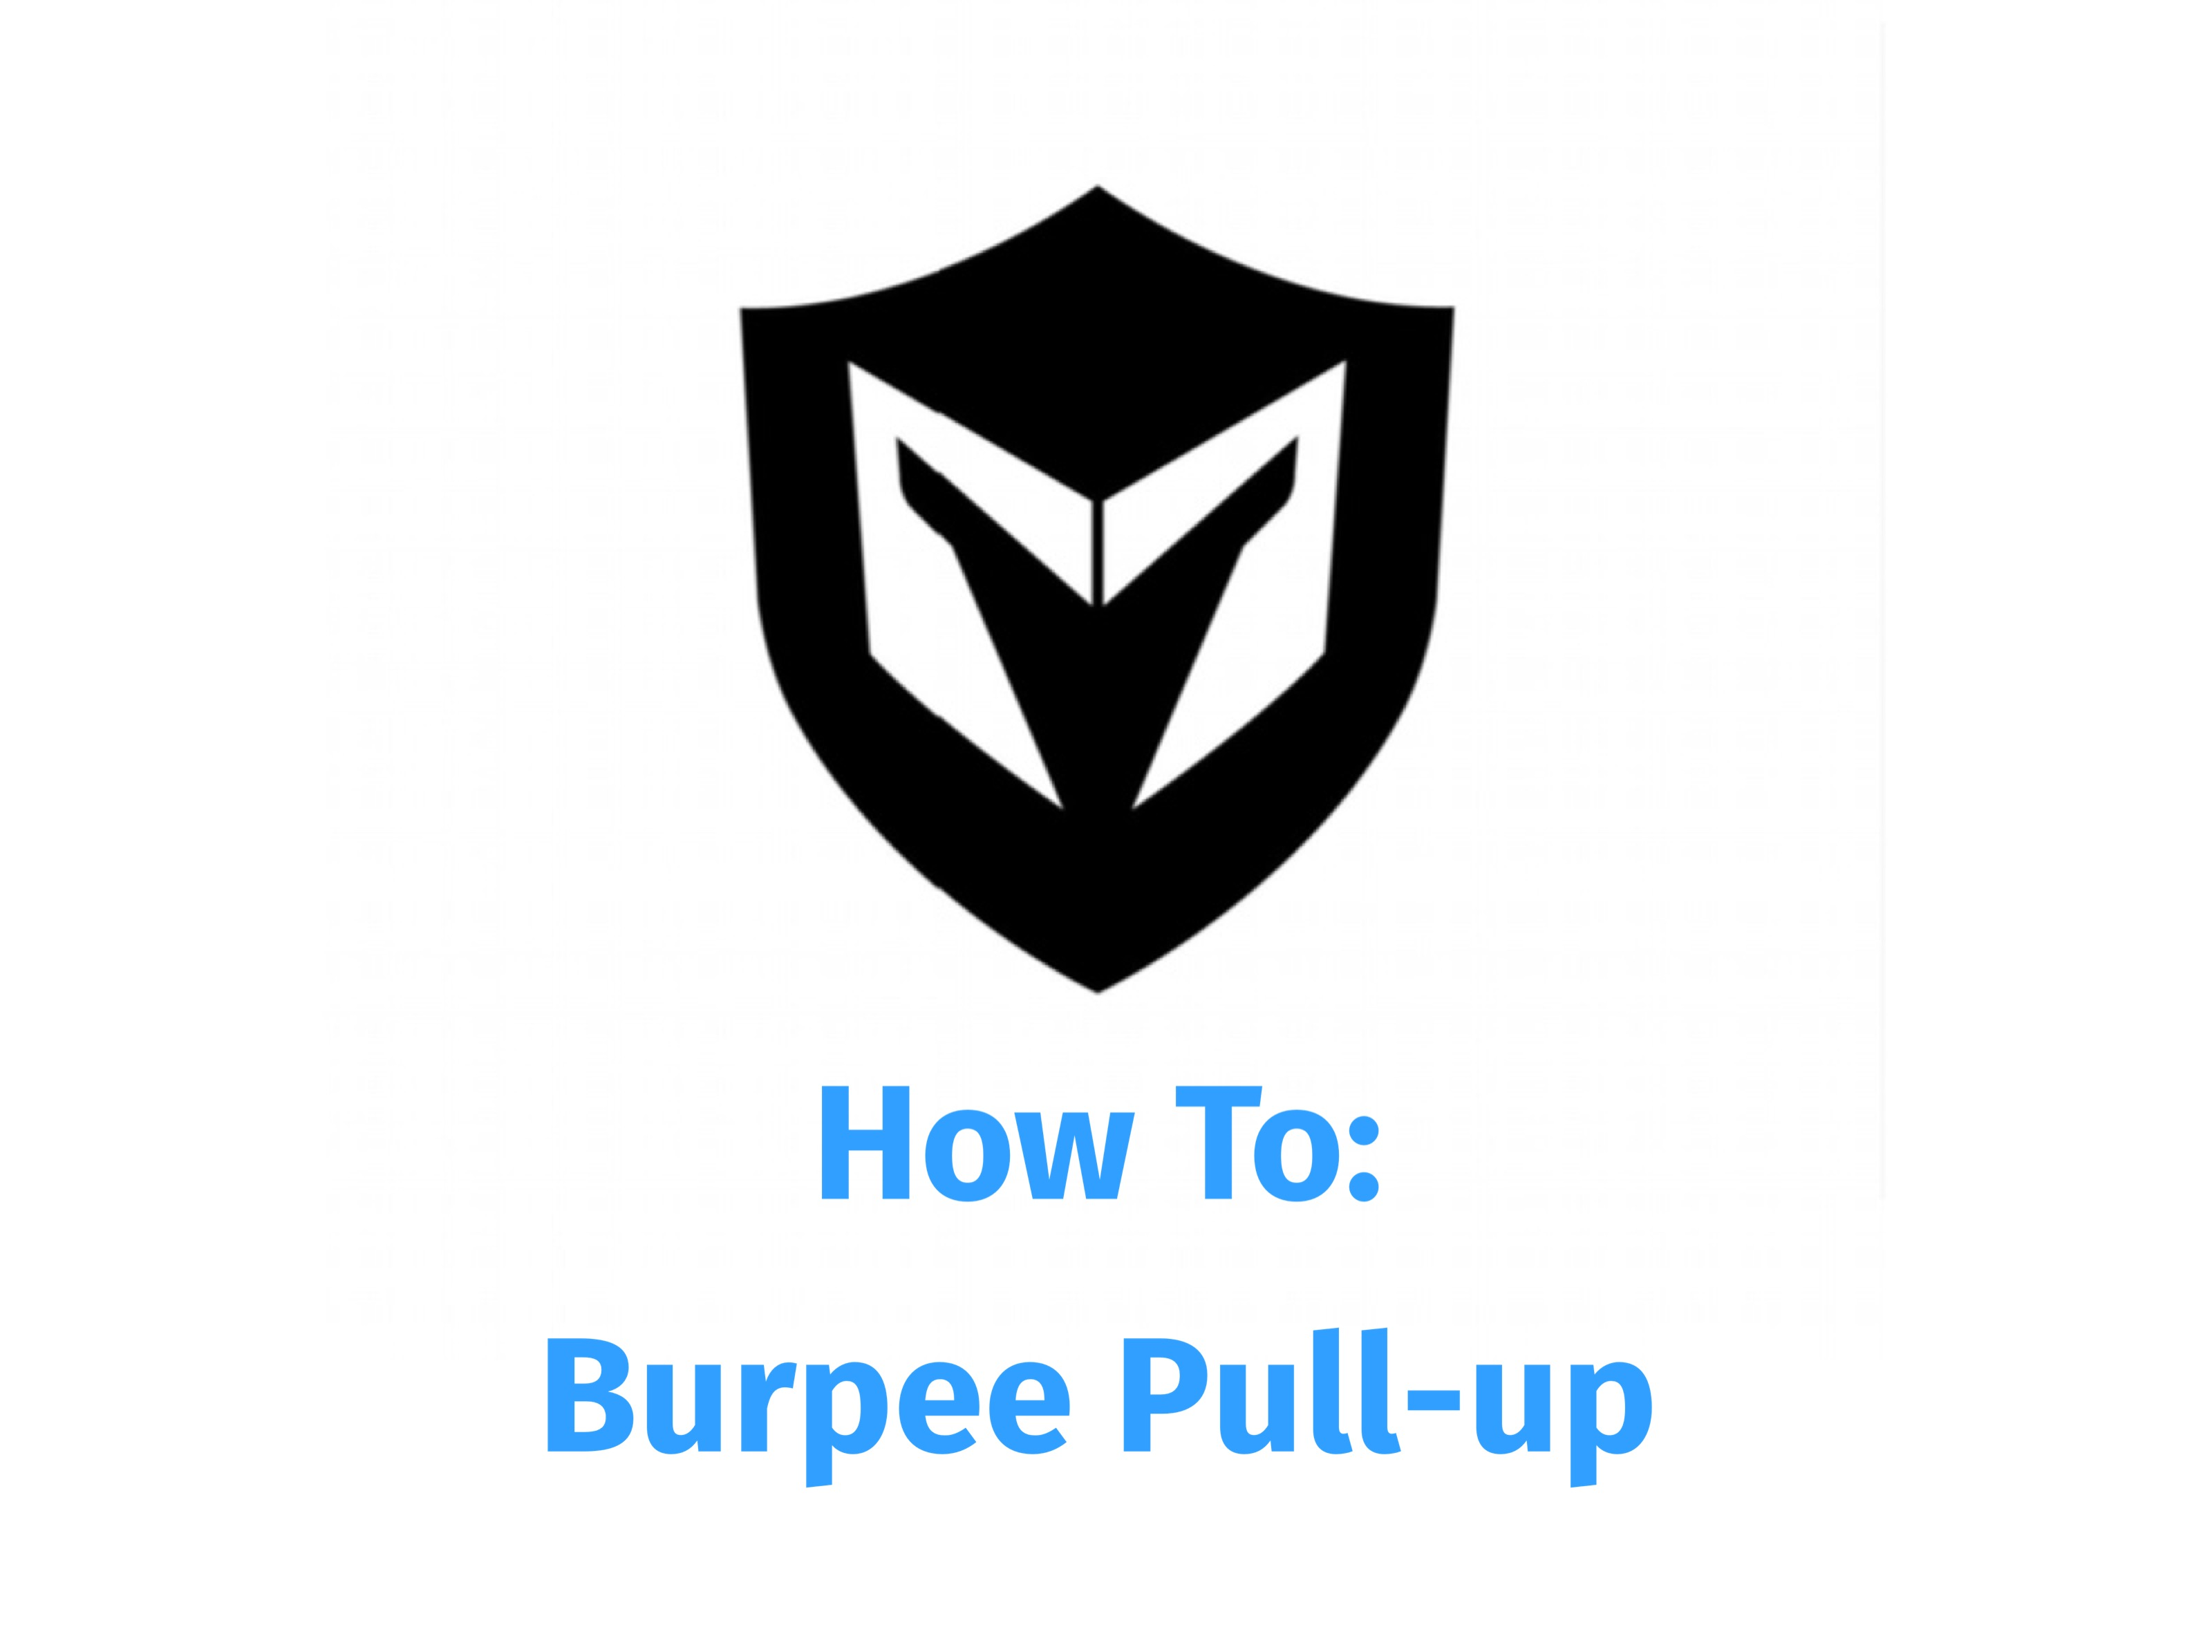 How To Video: Burpee Pull-up